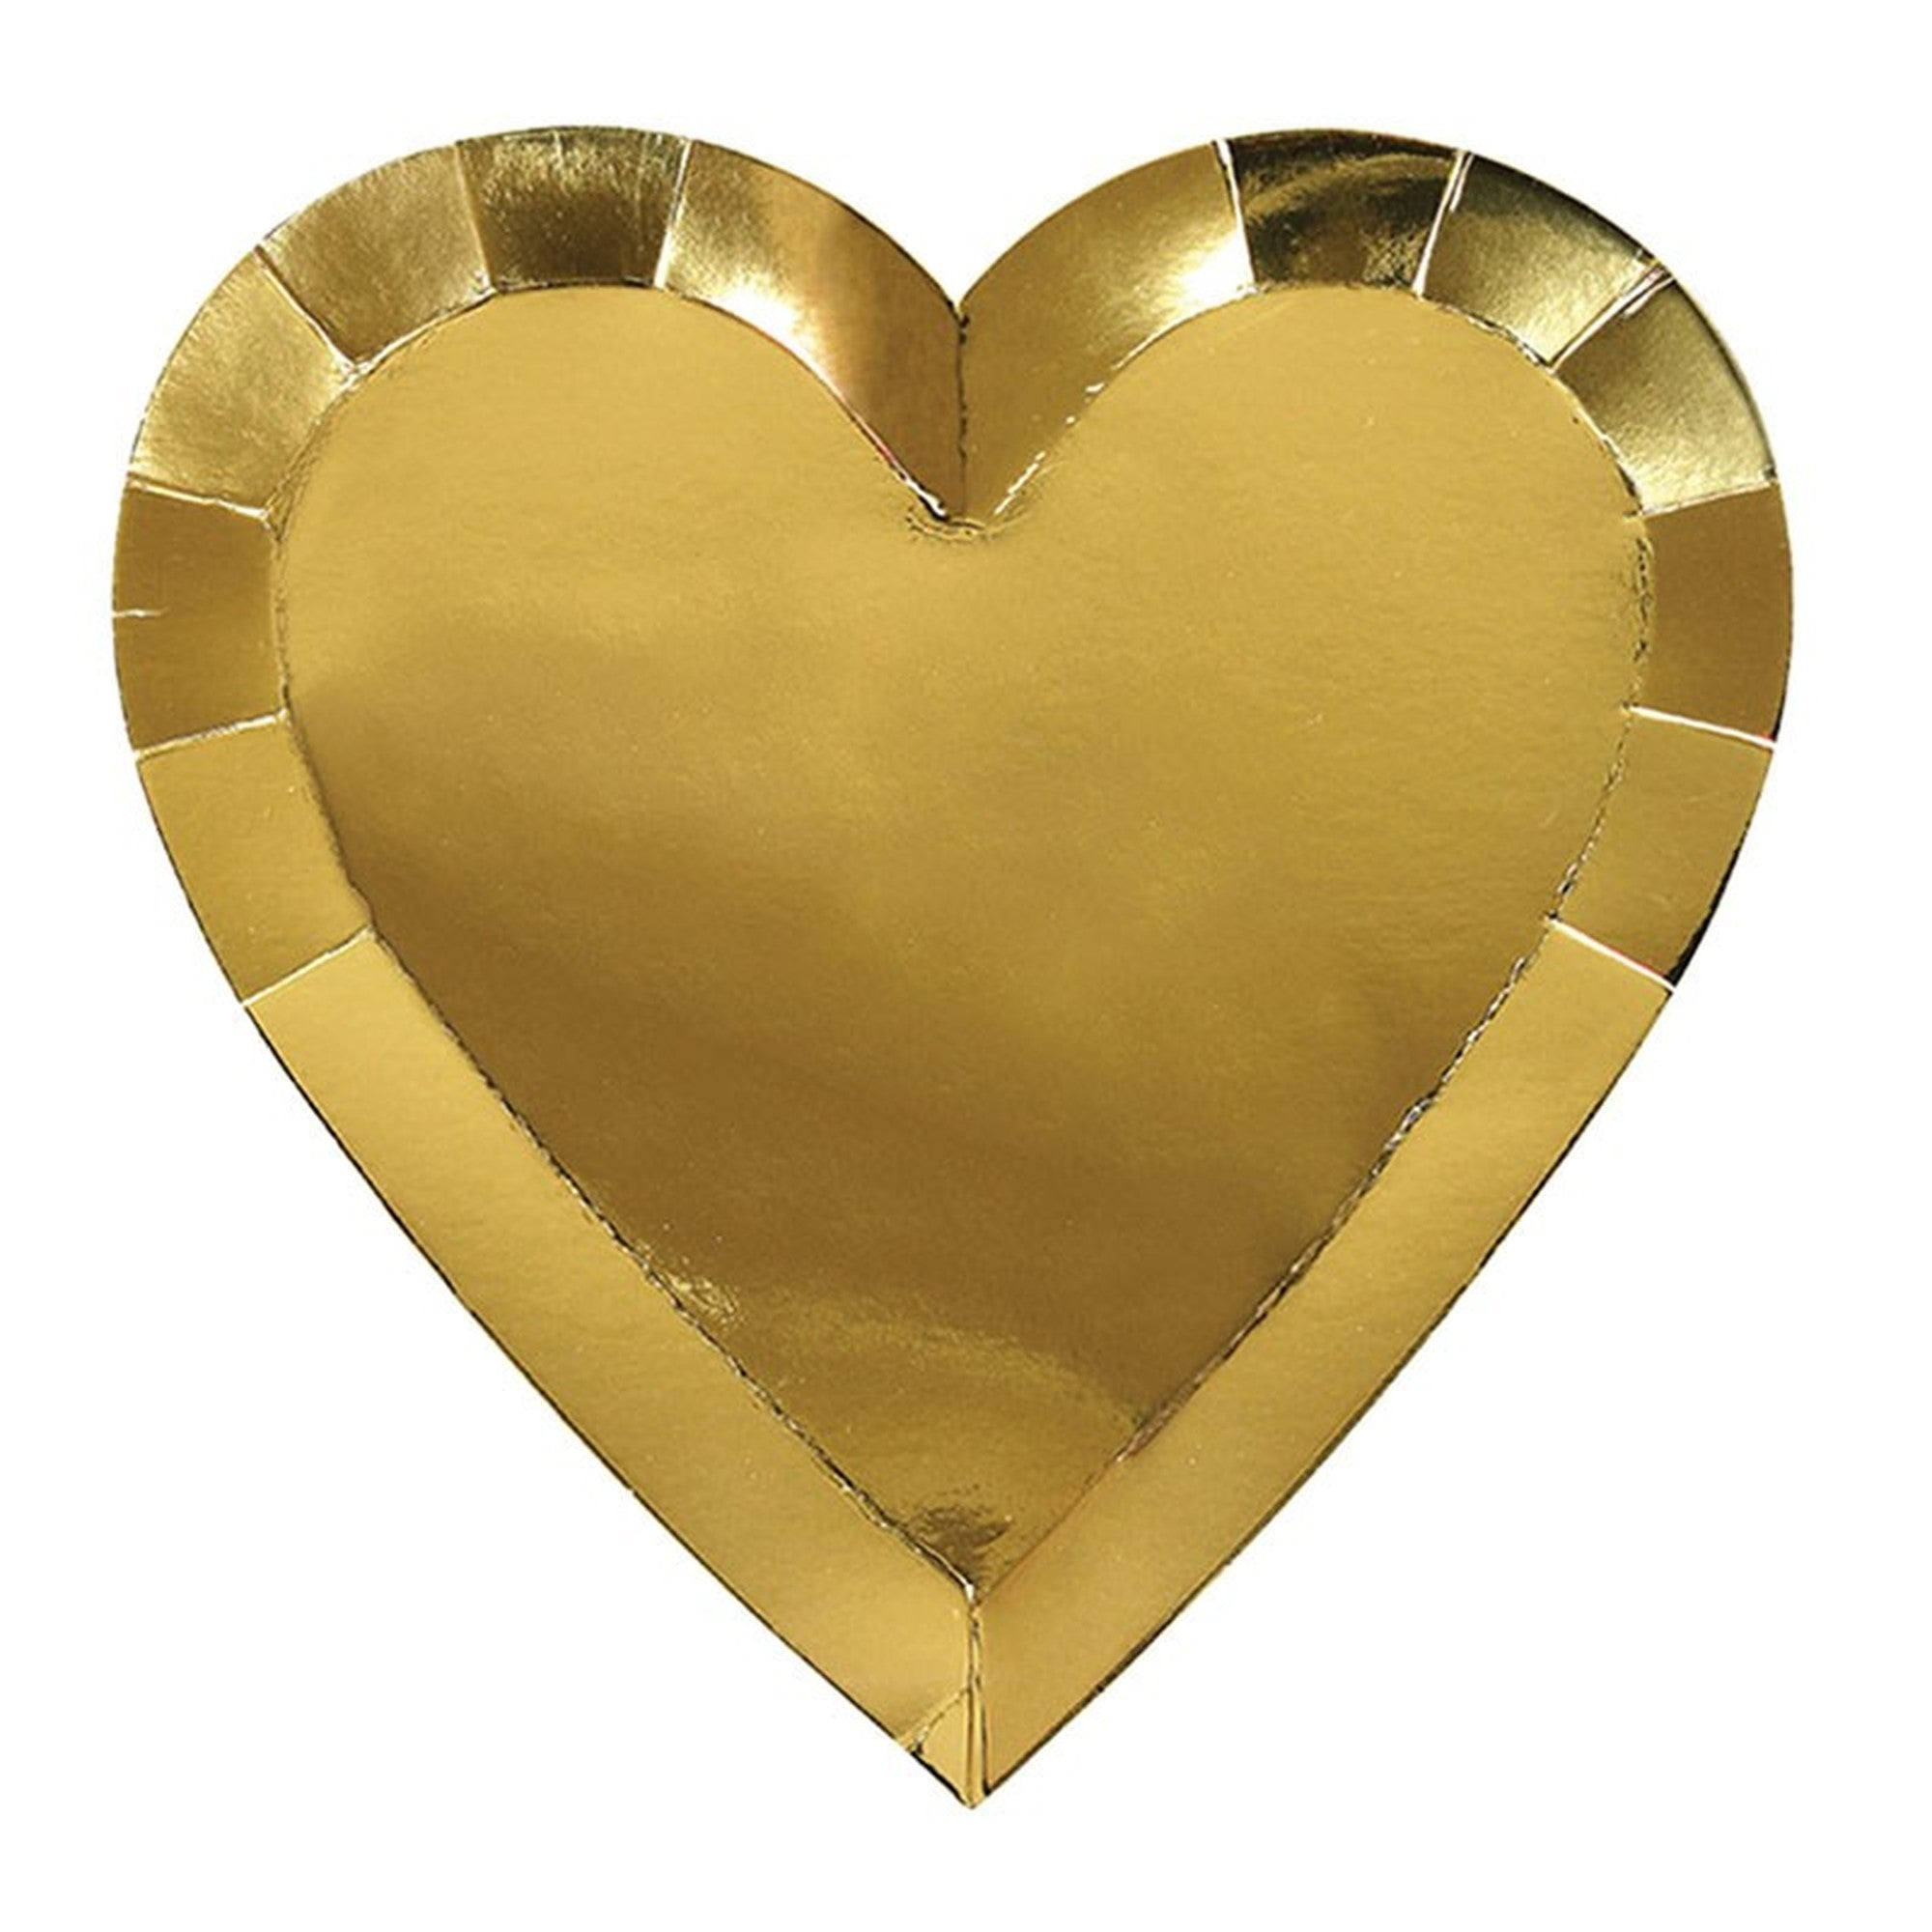 Meri Meri Gold Foil Heart Paper Plates - Large, MM-Meri Meri UK, Putti Fine Furnishings